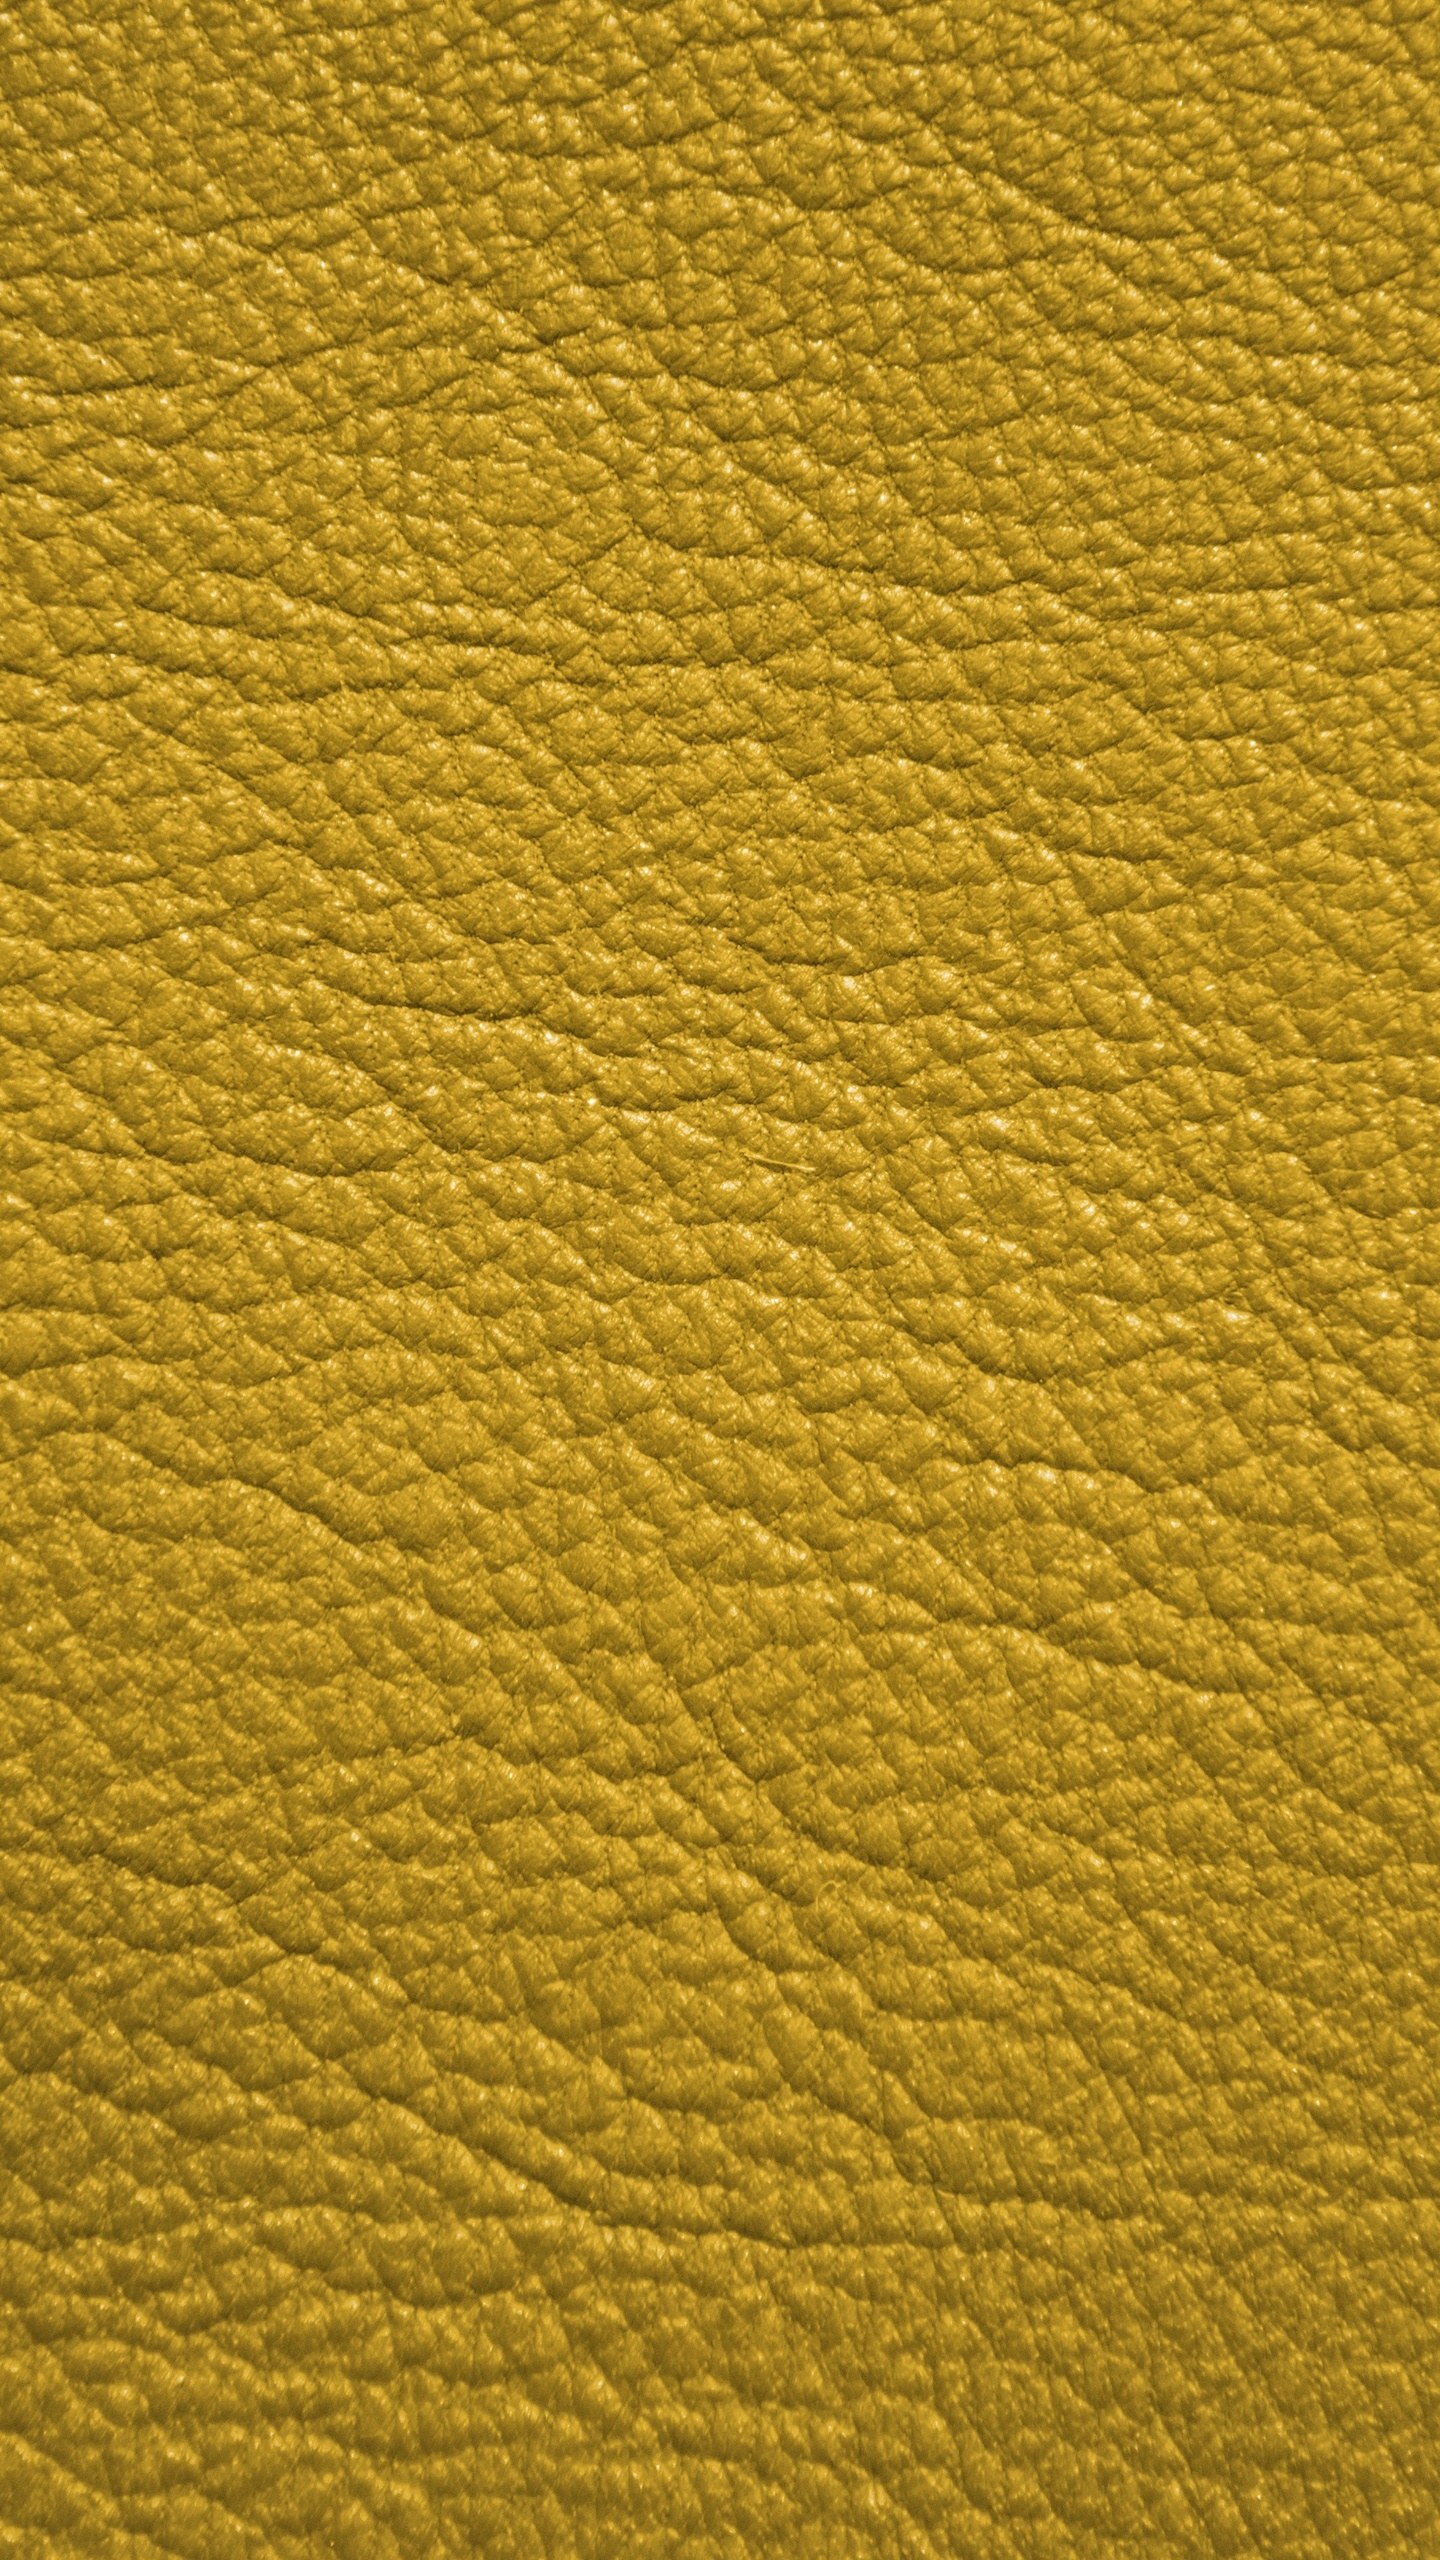 1440x2560 Yellow Leather 5k Samsung Galaxy S6 S7 Google Pixel Xl Nexus 6 6p Lg G5 Hd 4k Wallpapers Images Backgrounds Photos And Pictures